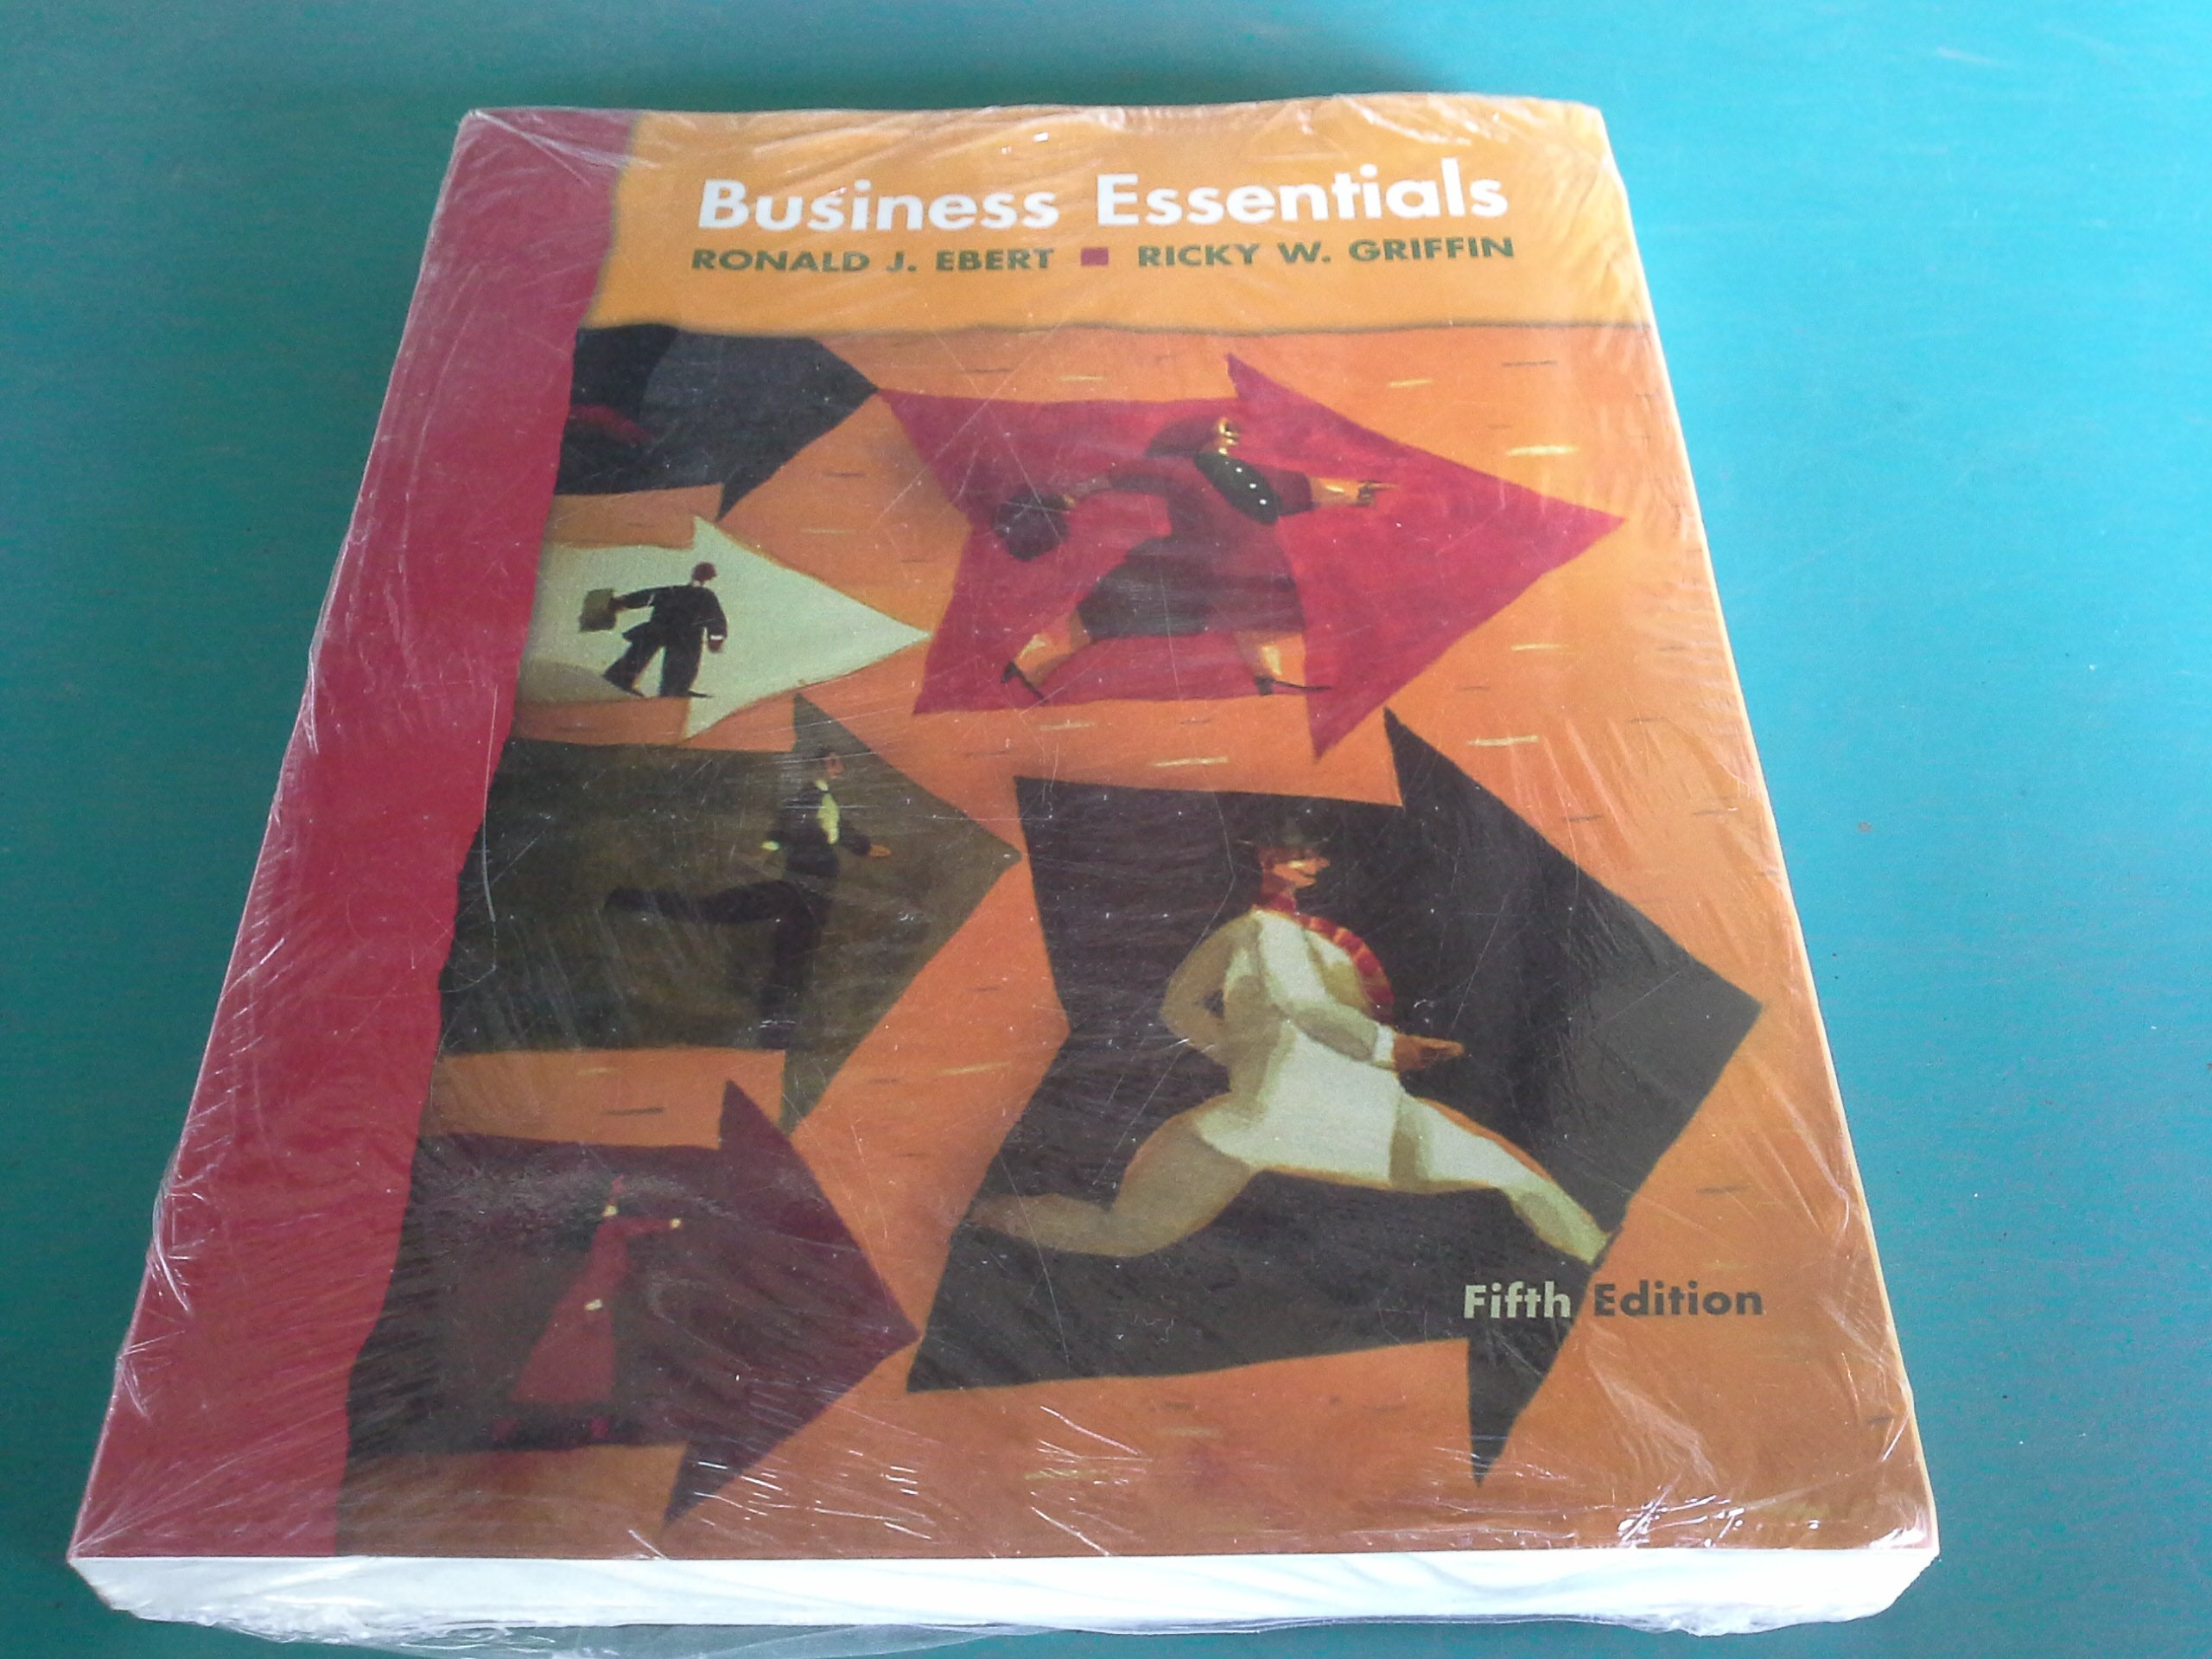 Business essentials fifth edition ebert griffin business essentials fifth edition ebert griffin 9780536820228 amazon books fandeluxe Image collections